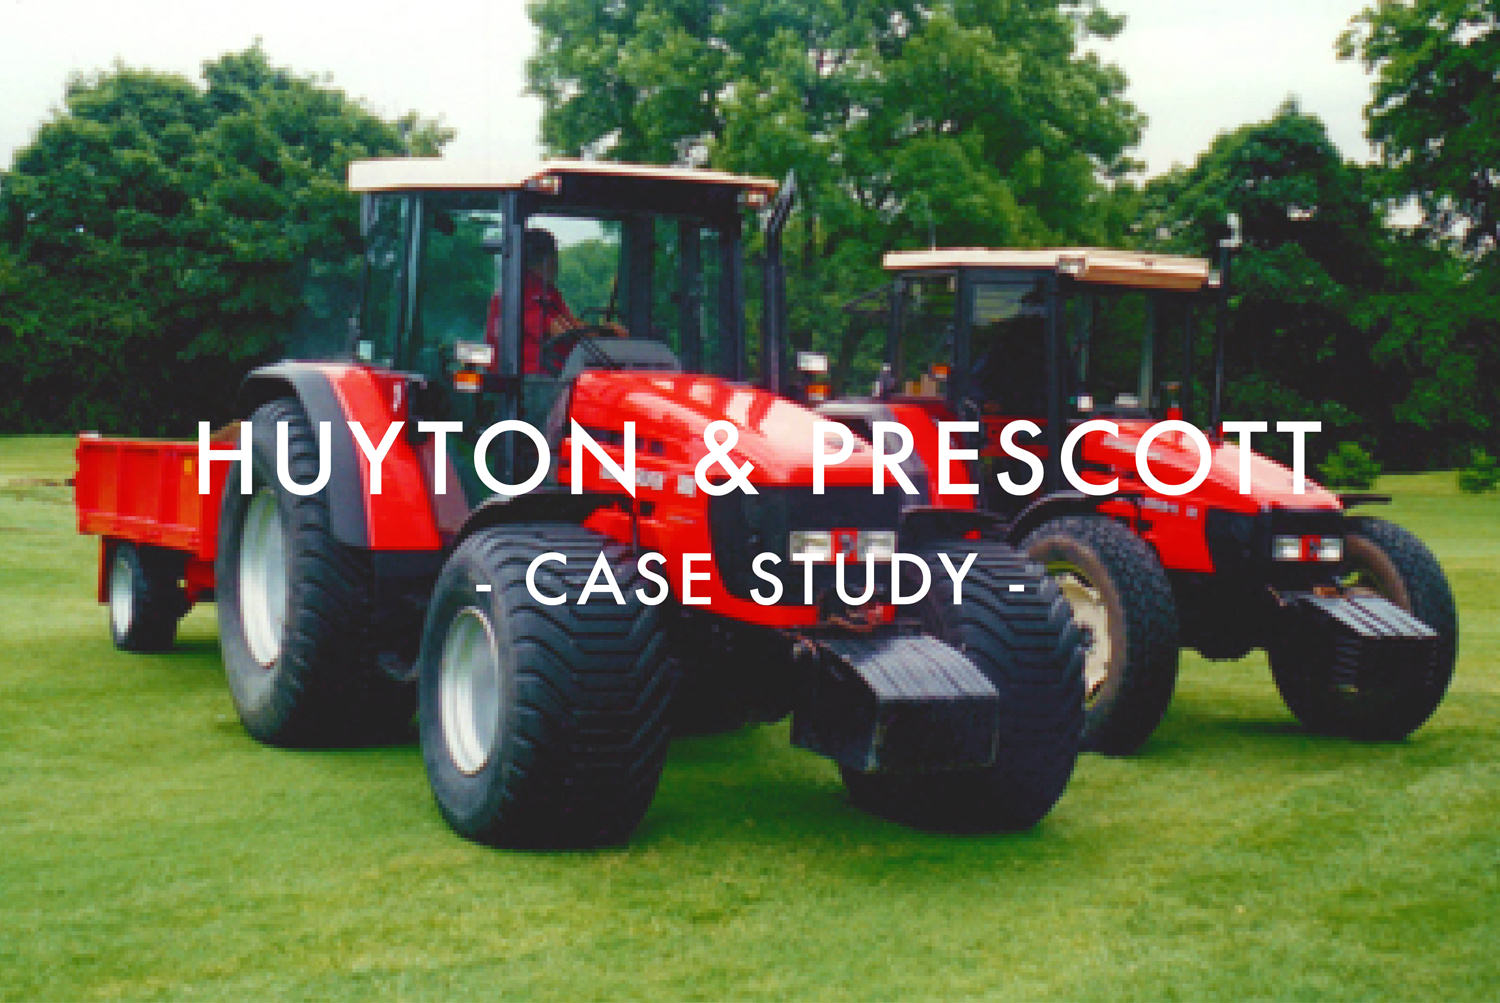 Huyton & Prescott Golf Course Case Study